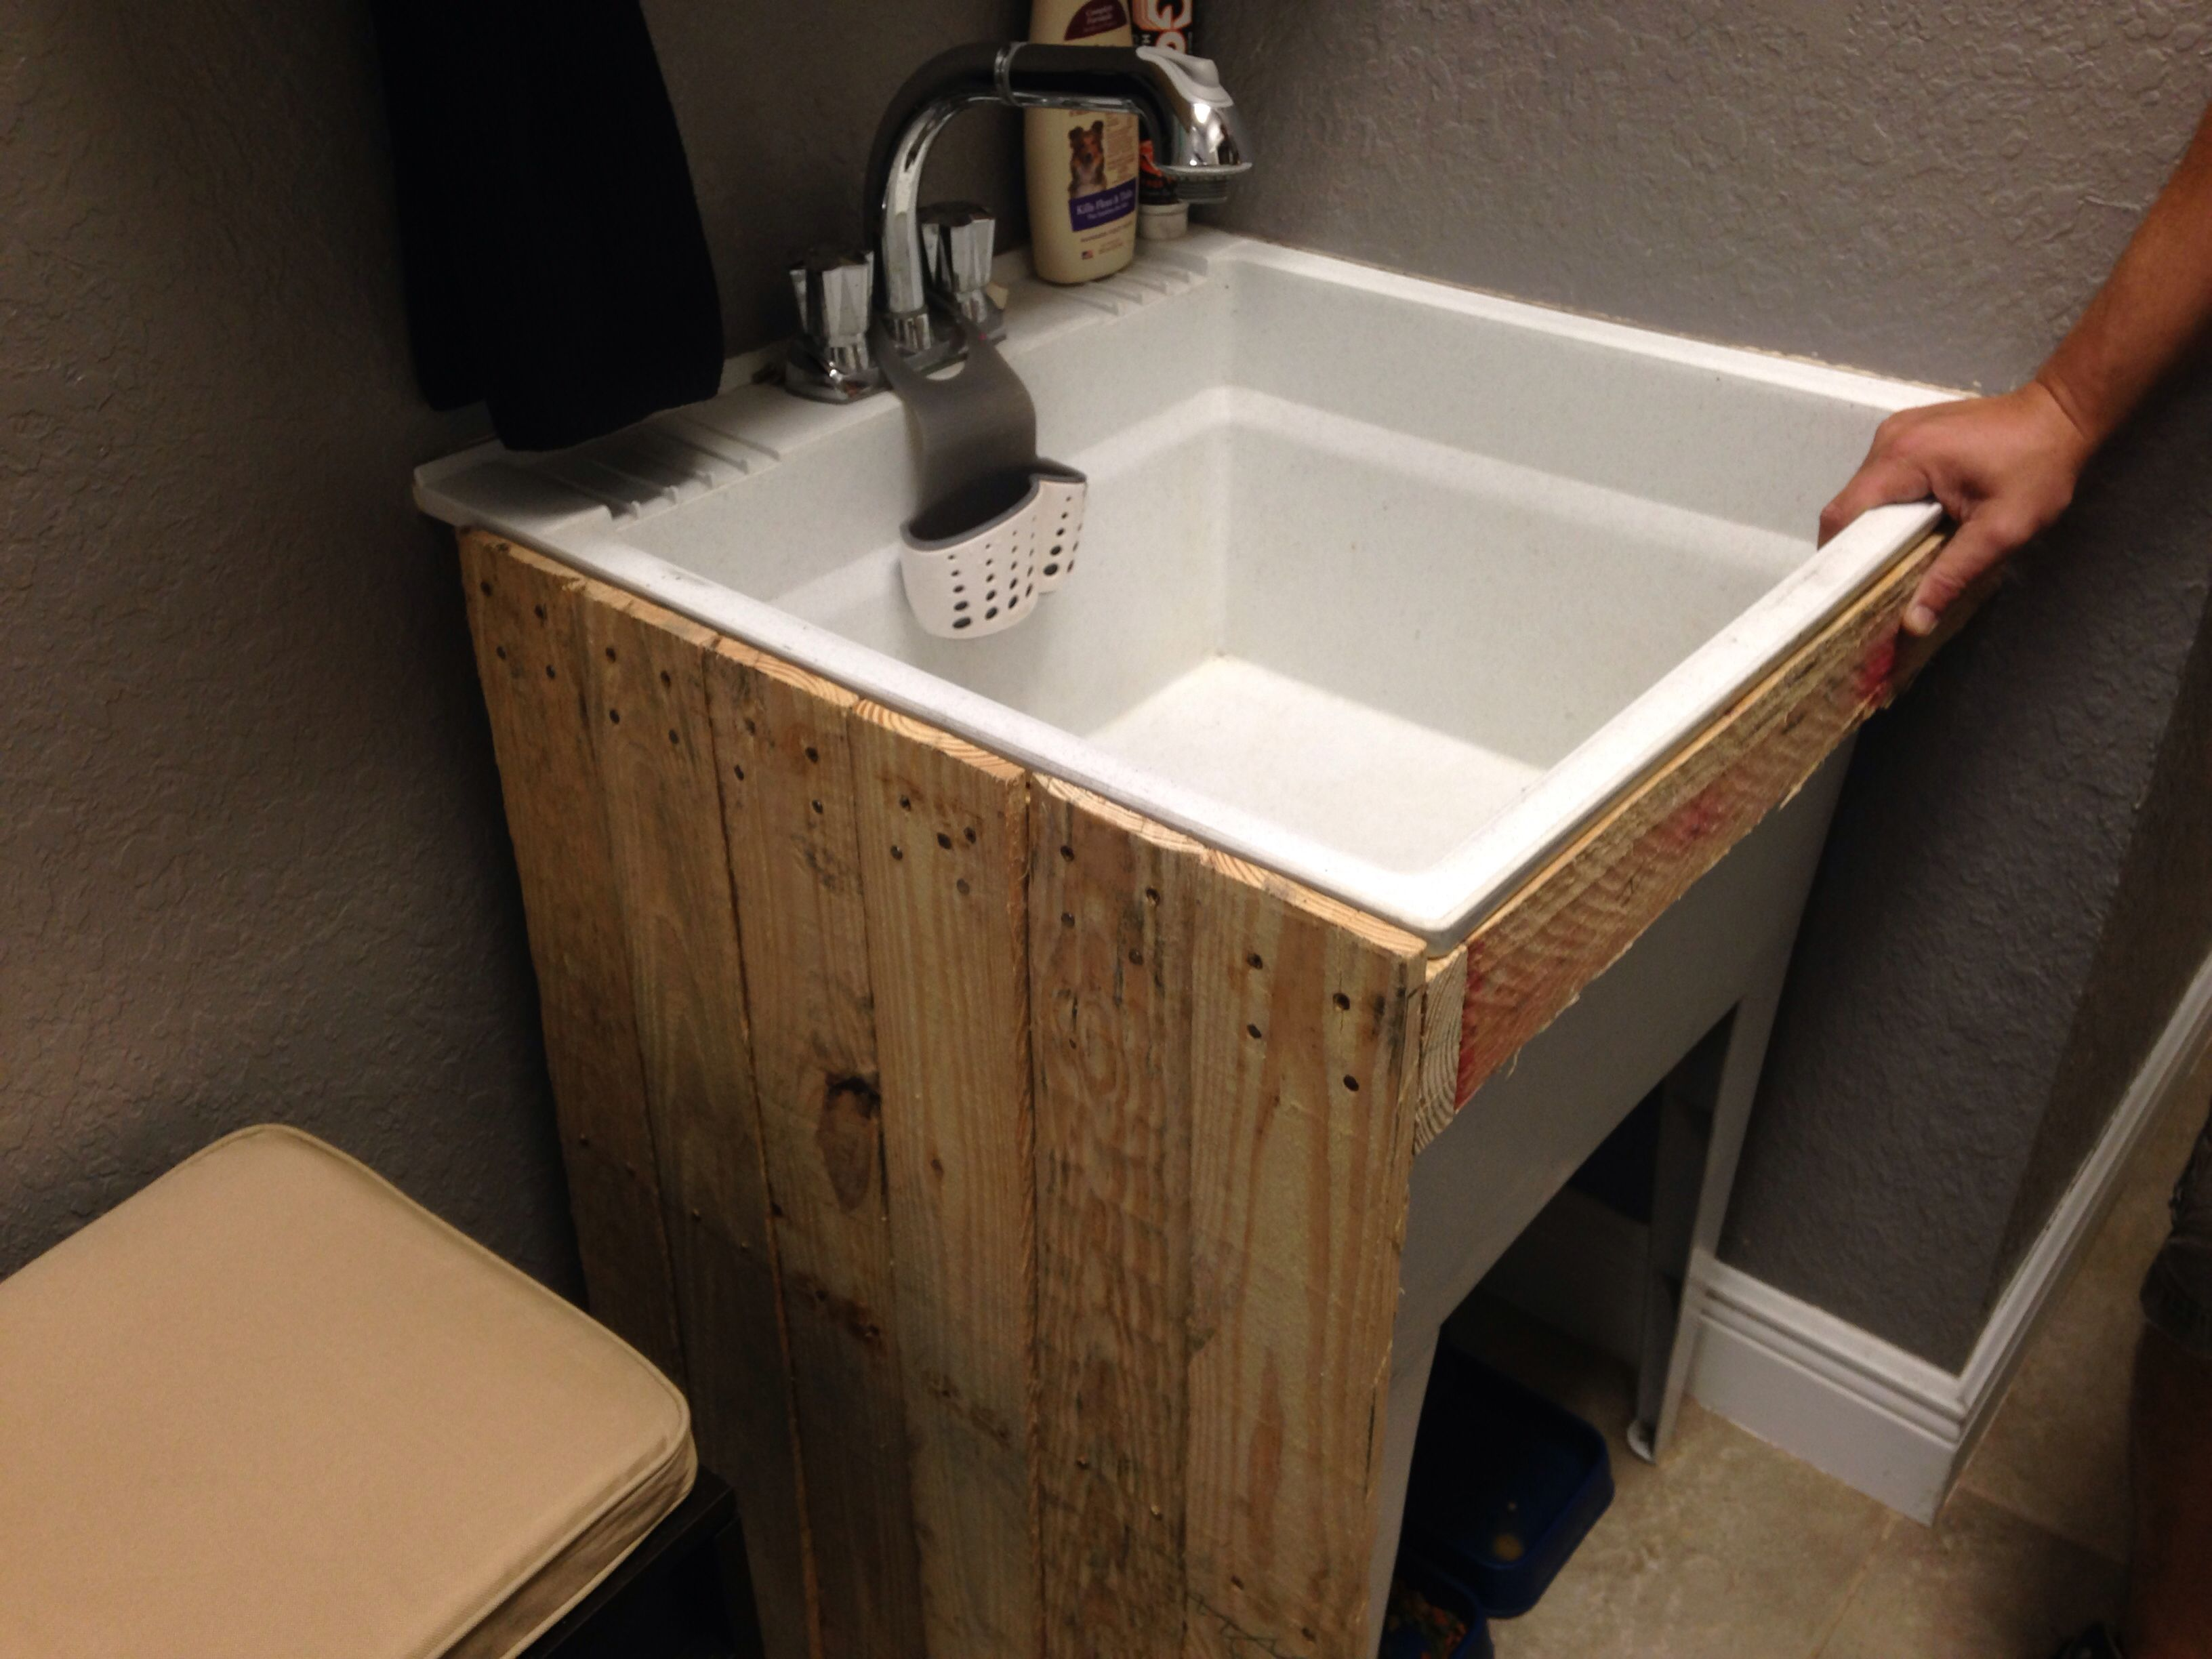 Lovely Laundry Room Utility Sink Ideas 16 With Additional New Home